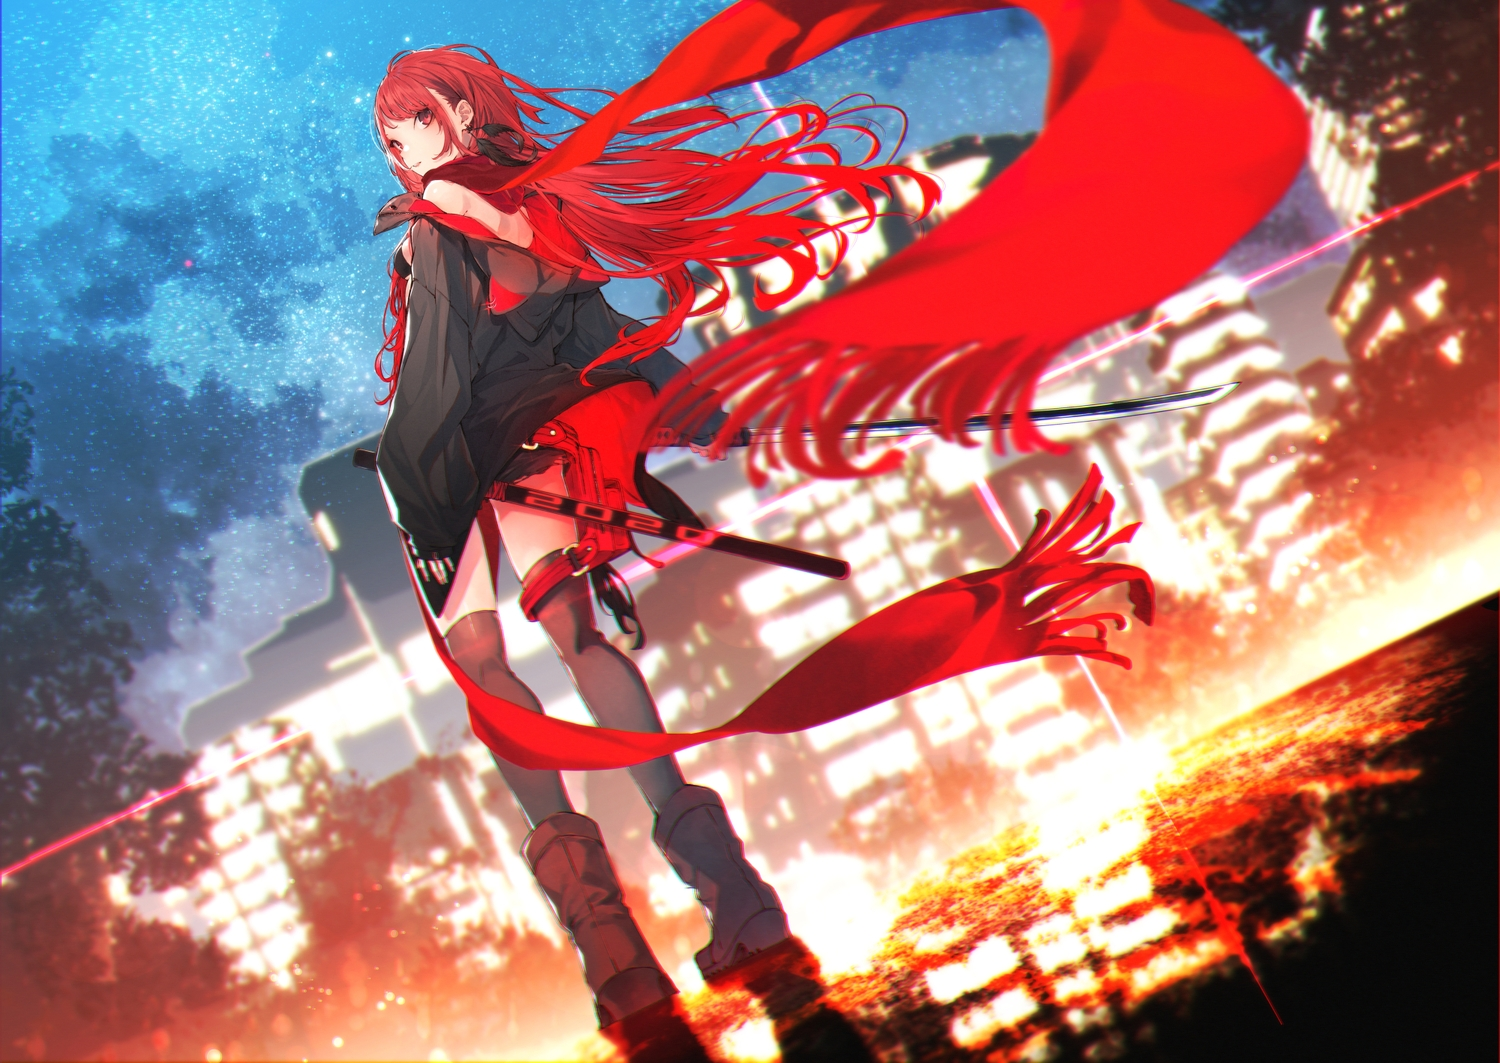 aliasing boots building city katana kuwashima_rein long_hair original red_eyes red_hair scarf sword thighhighs weapon